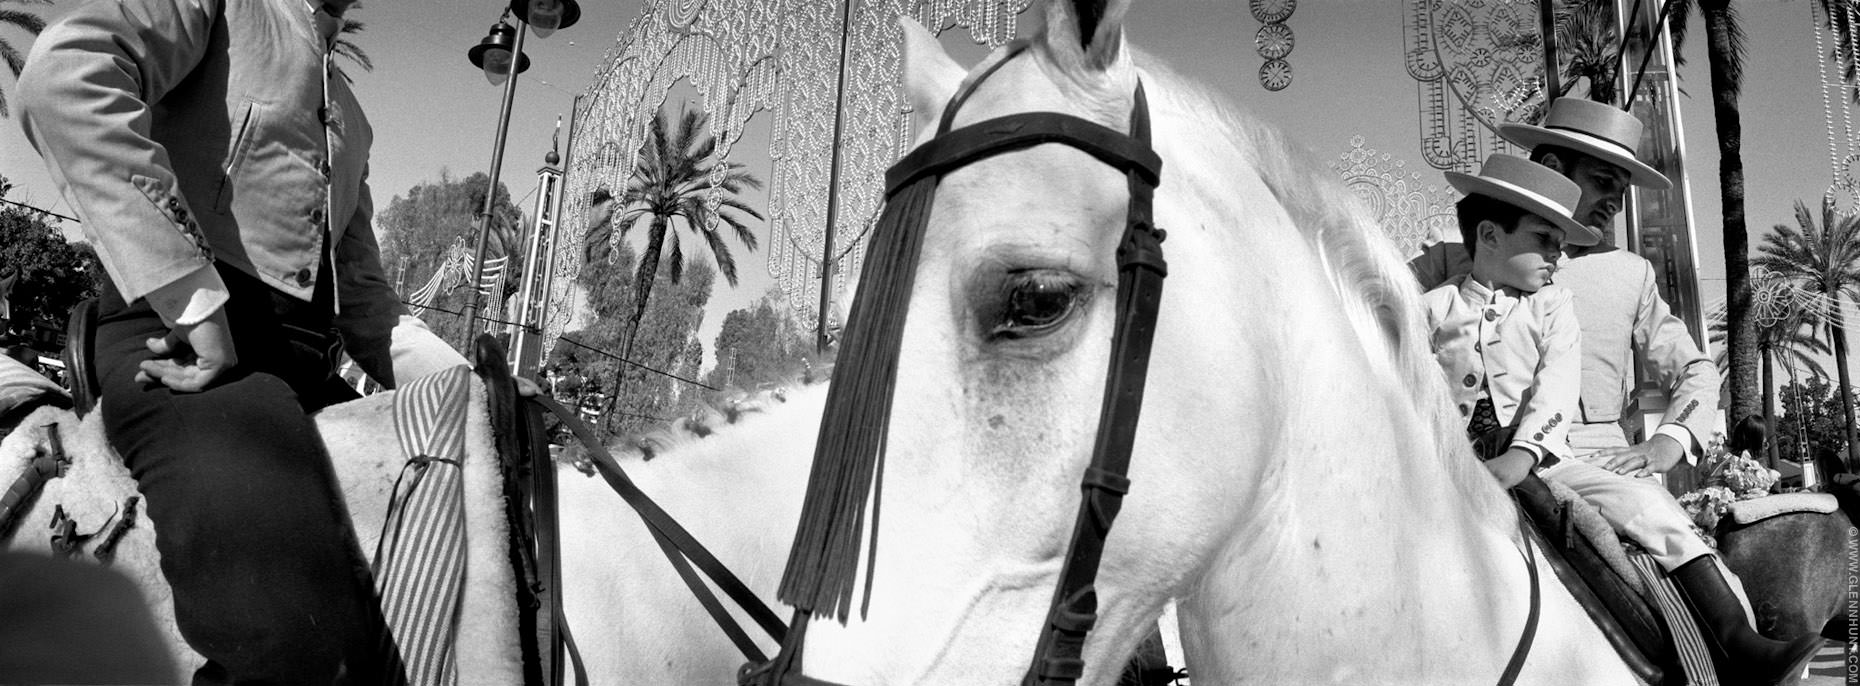 Horses at the Feria del Caballo and the Royal School of Equestrian Art ( Fundación Real Escuela Andaluza del Arte Ecuestre) , Jerez, Spain